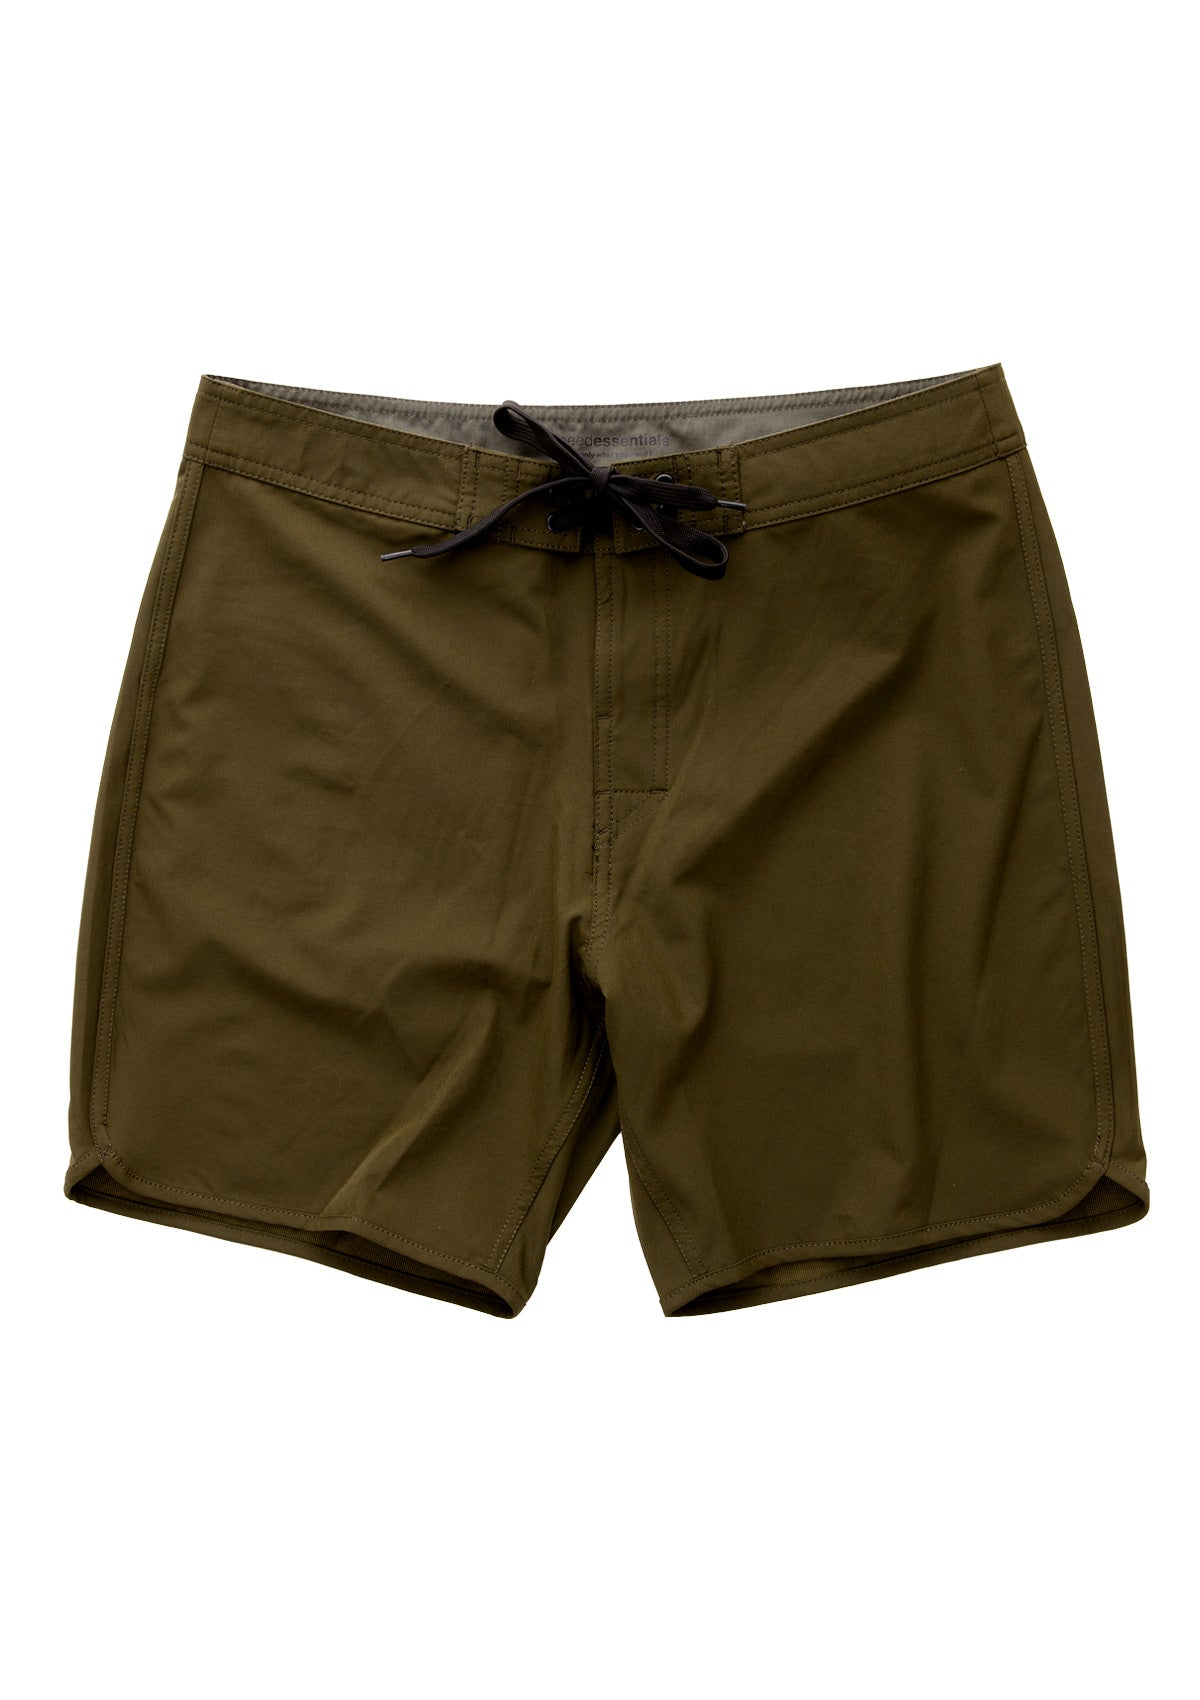 needessentials scallop mens surfing boardshorts non branded olive